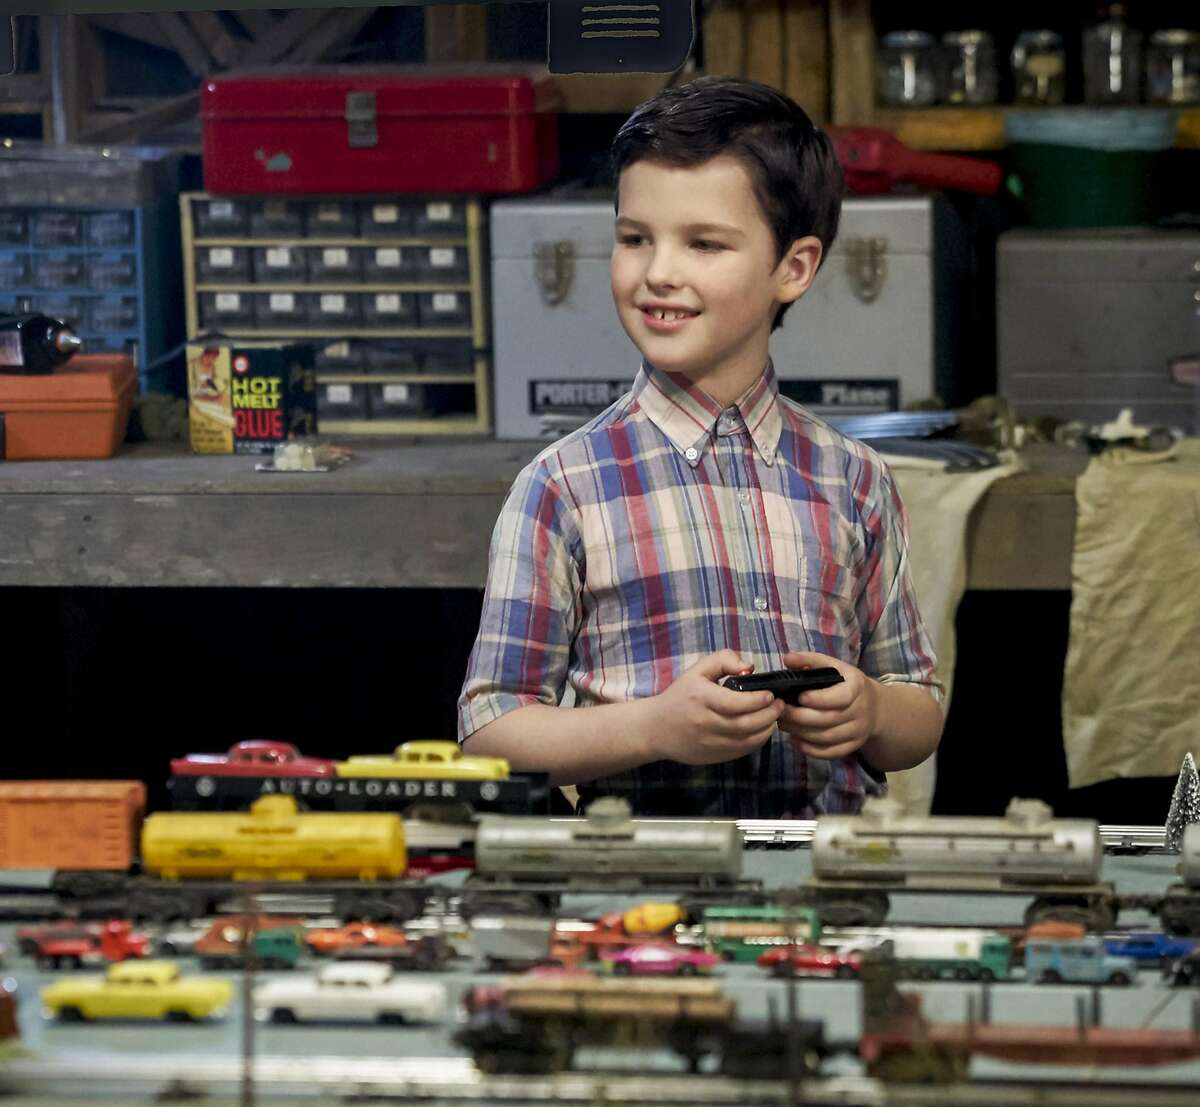 """Iain Armitage plays the young Sheldon Cooper in the CBS sprin-off of """"The Big Bang Theory."""" In """"Young Sheldon"""" he plays the 9-year-old Sheldon who is attending high school. The show has a special premiere on CBS Sept. 25, then lands on its regular timeslot on Nov. 2.(Robert Voets/CBS ENTERTAINMENT)"""